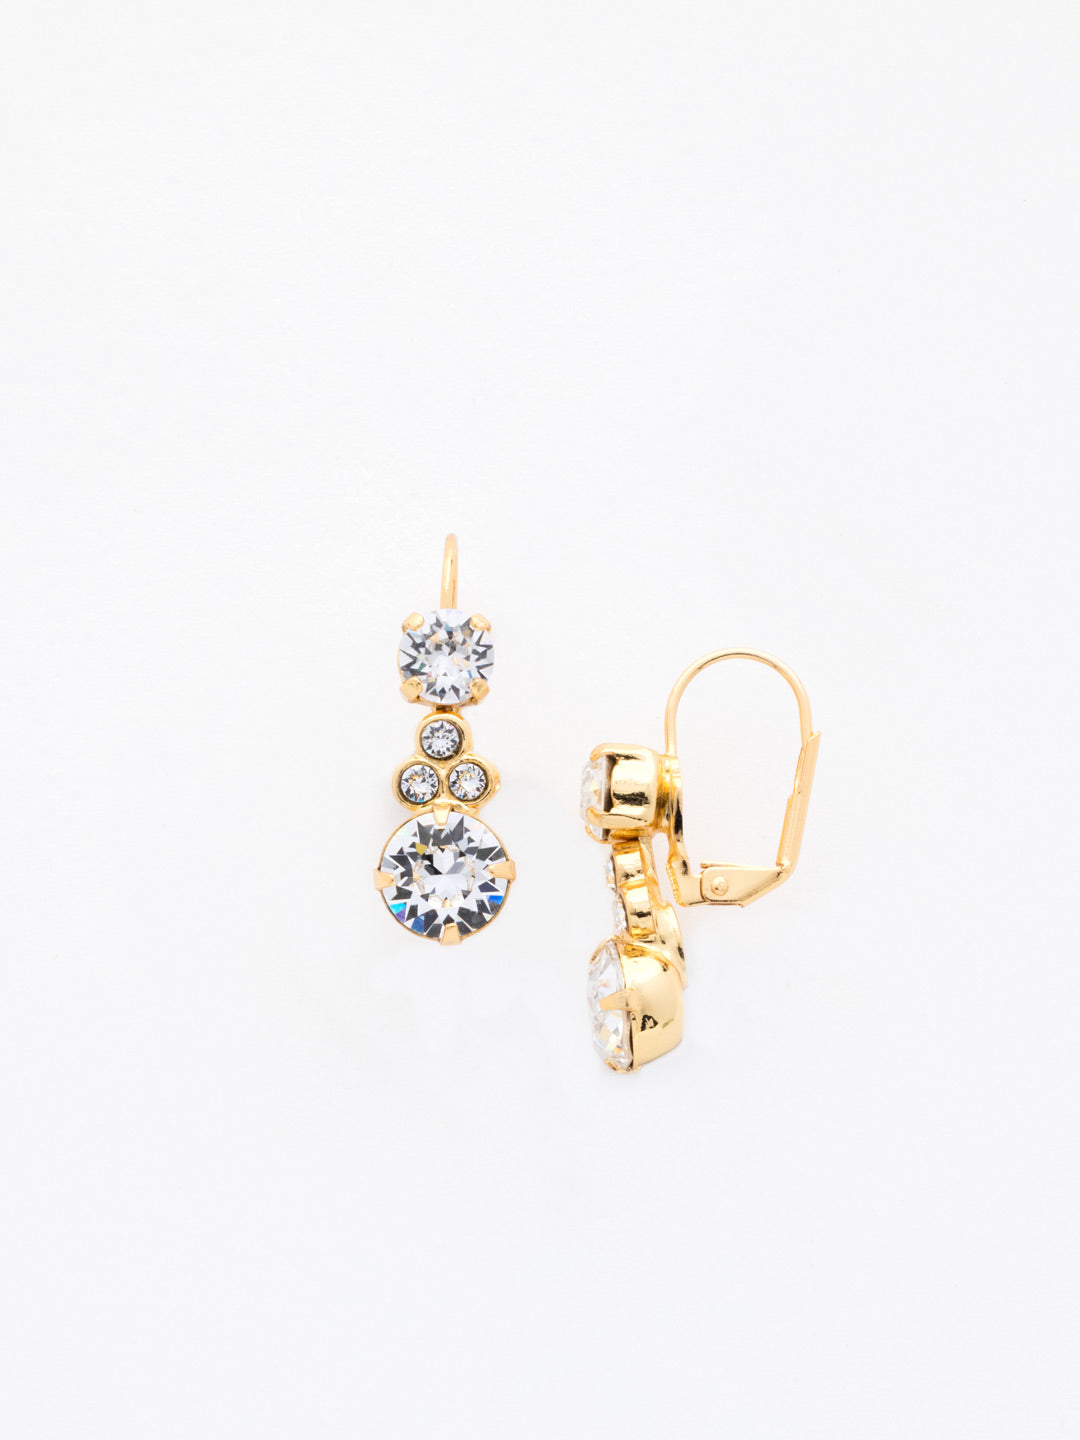 Clustered Circular Crystal Drop Earring - ECJ14BGCRY